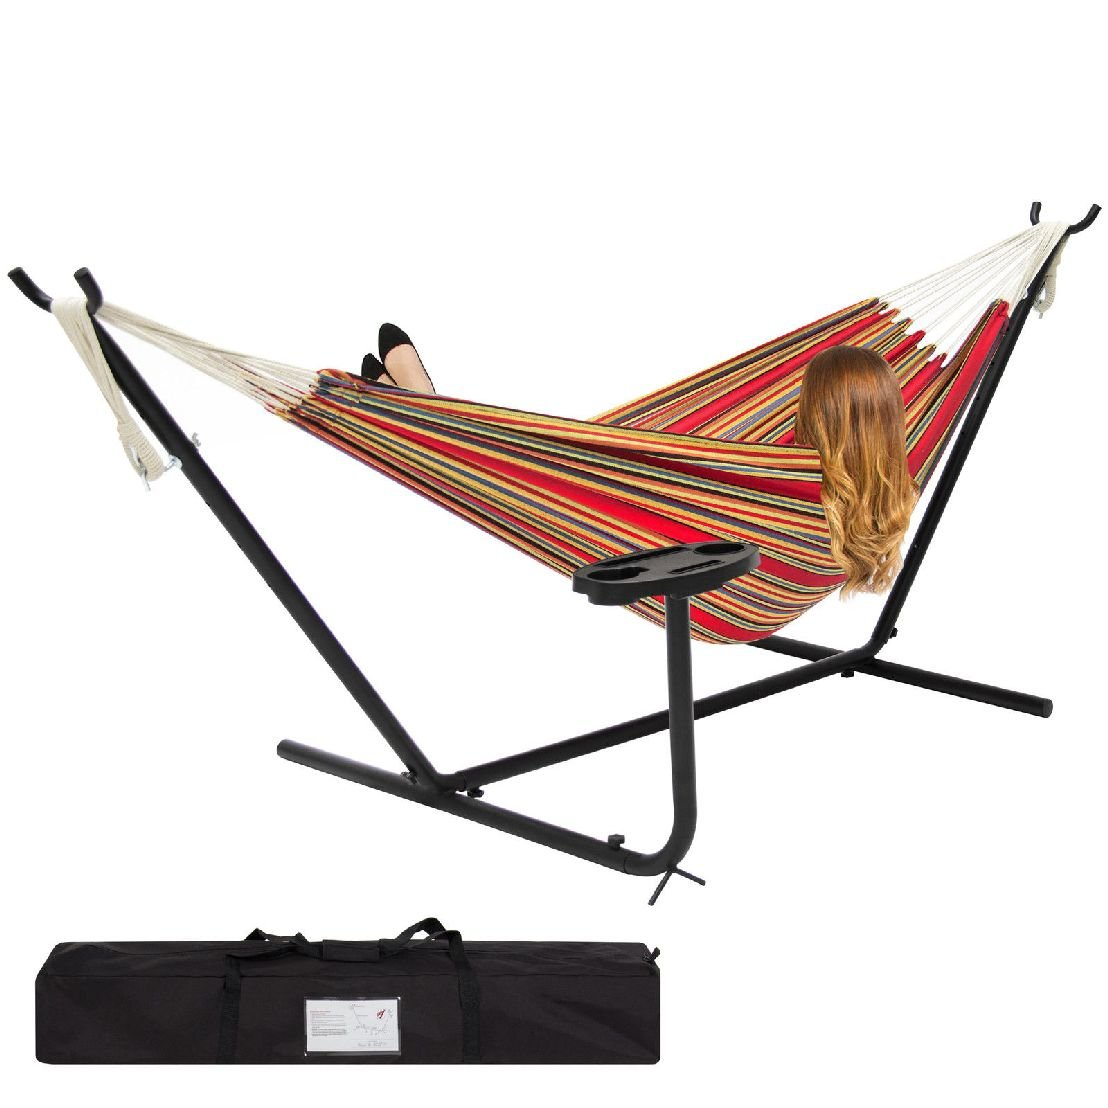 Double Hammock And Steel Stand W/ Cup Holder Tray And Carrying Bag- Red Stripe by BEC